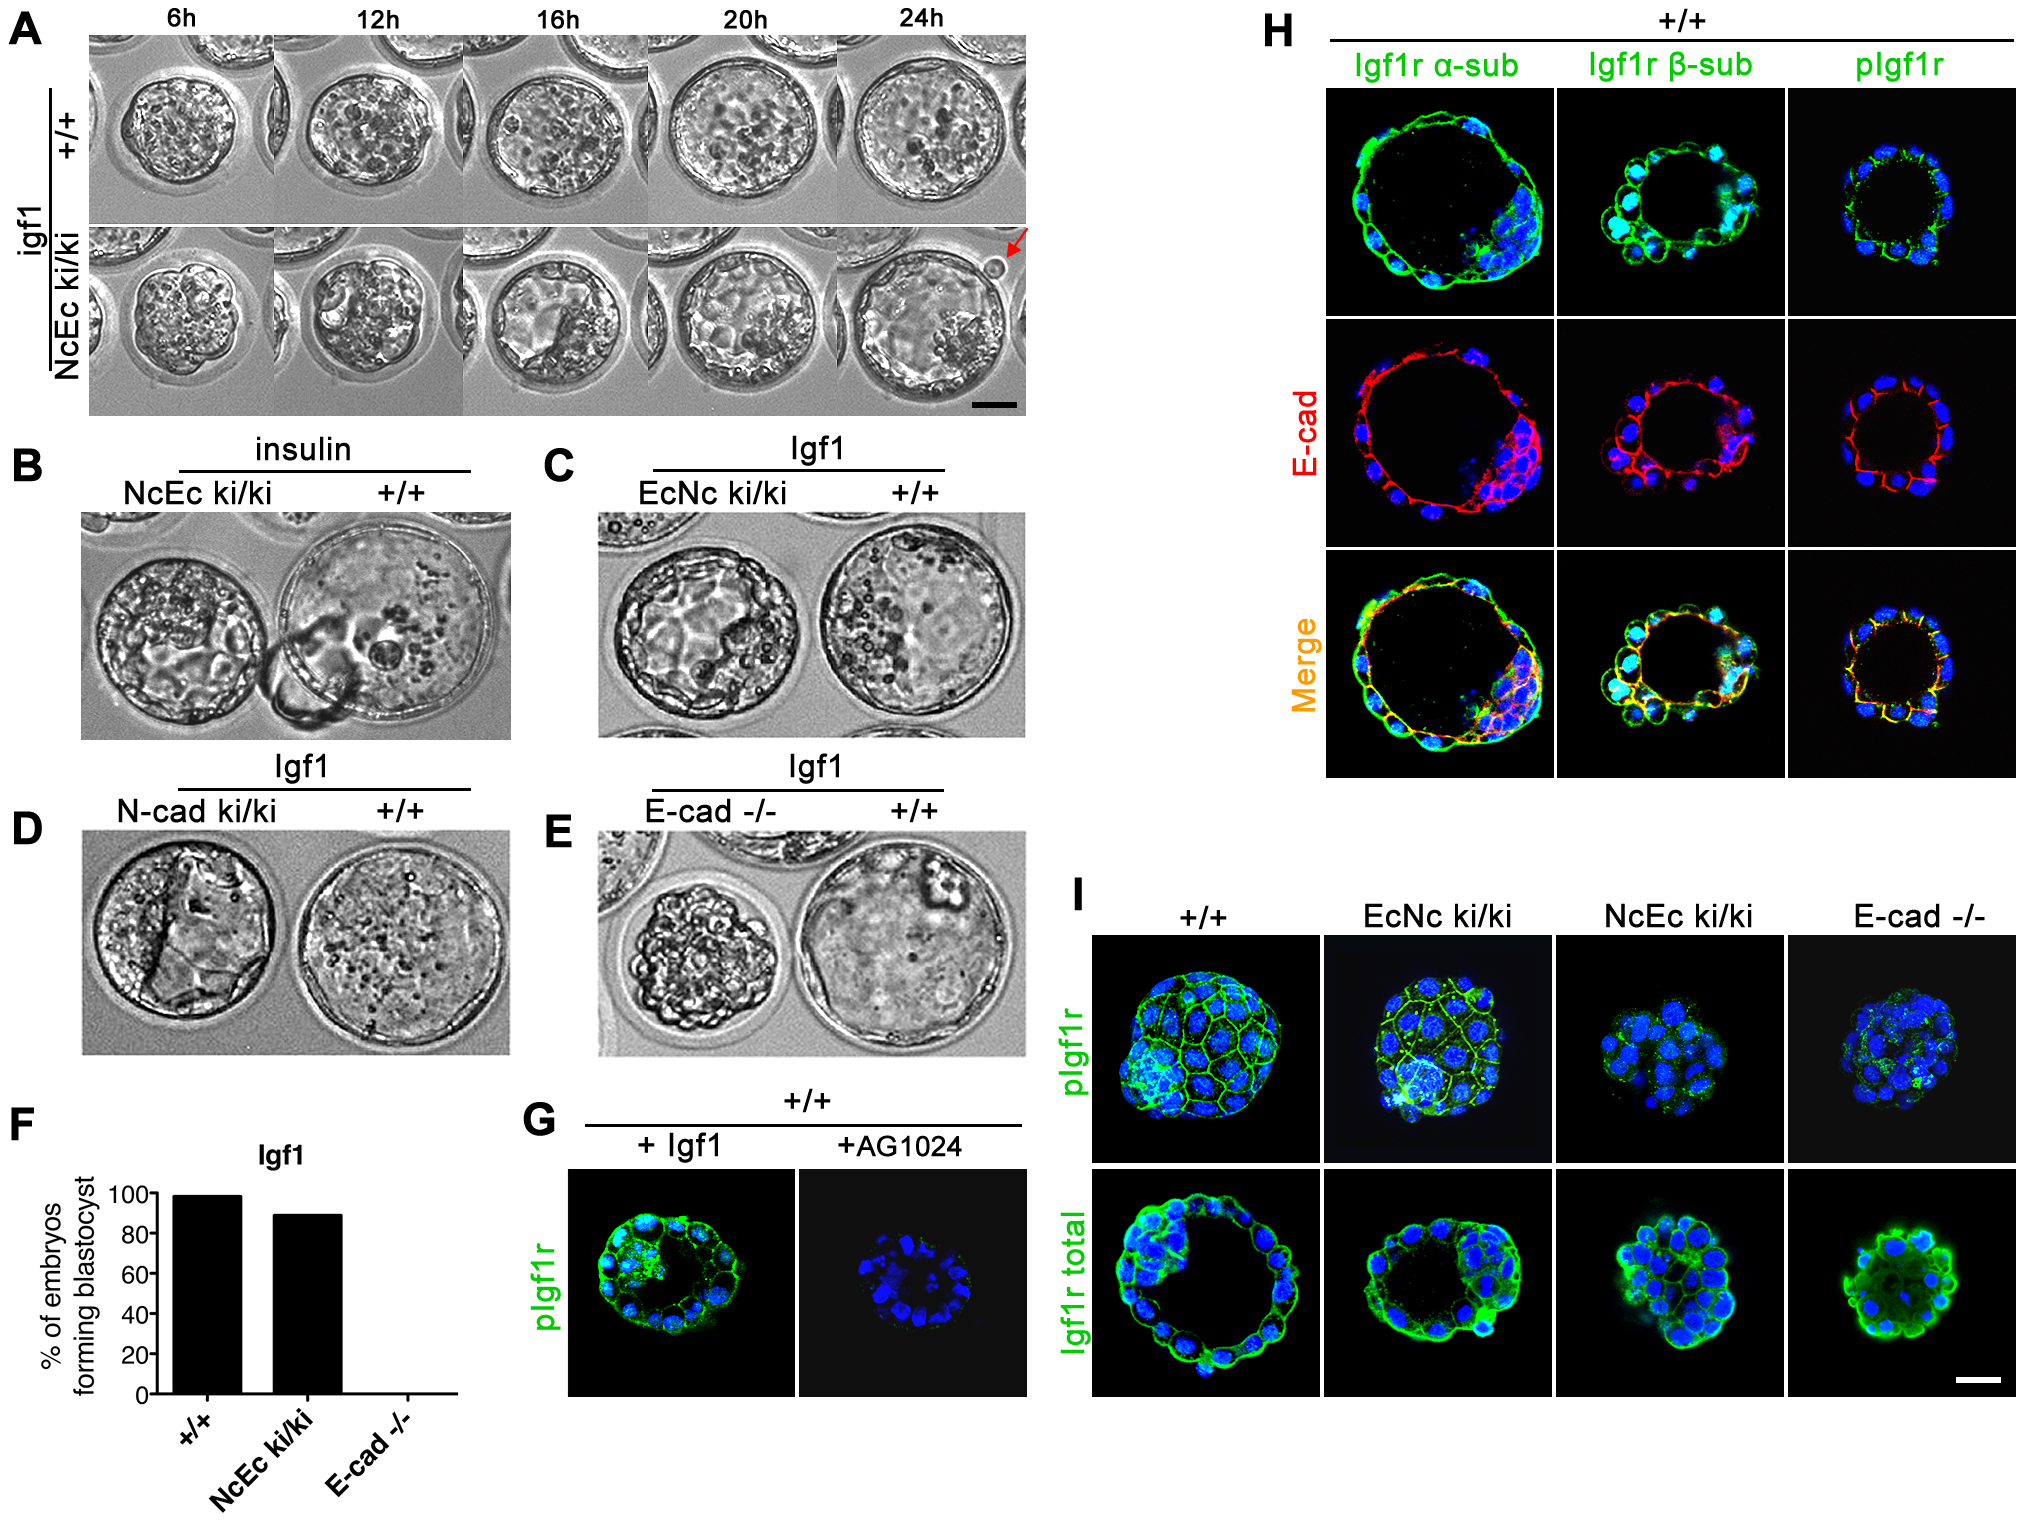 Artificial increase of Igf1 levels during <i>in vitro</i> culture rescues blastocyst formation suggesting Igf1 signaling as the endogenous prosurvival stimulus.